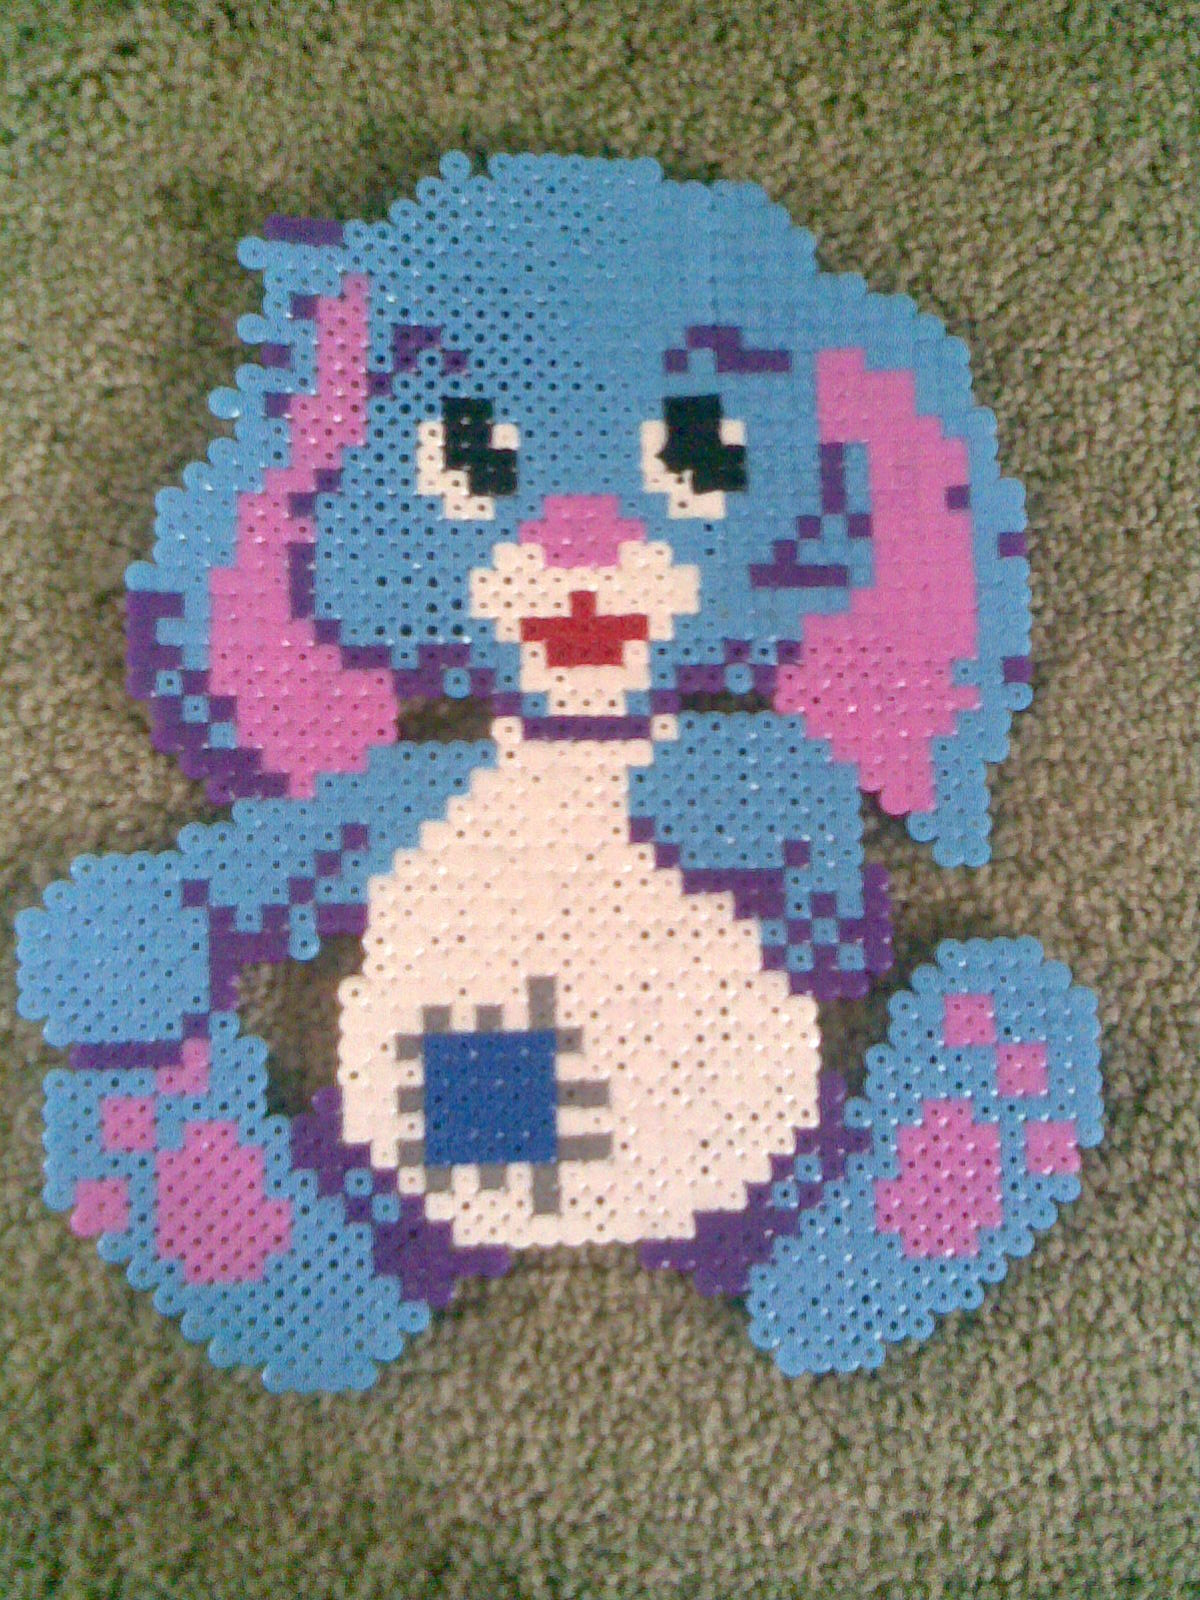 perler beads projects 2018-6-15  this is perler ideas: perler beads drink topper this is one of the perfect craft ideas that you can easily make in your home together with your children this would be an excellent diy idea to have your glass topper out of your own beads.